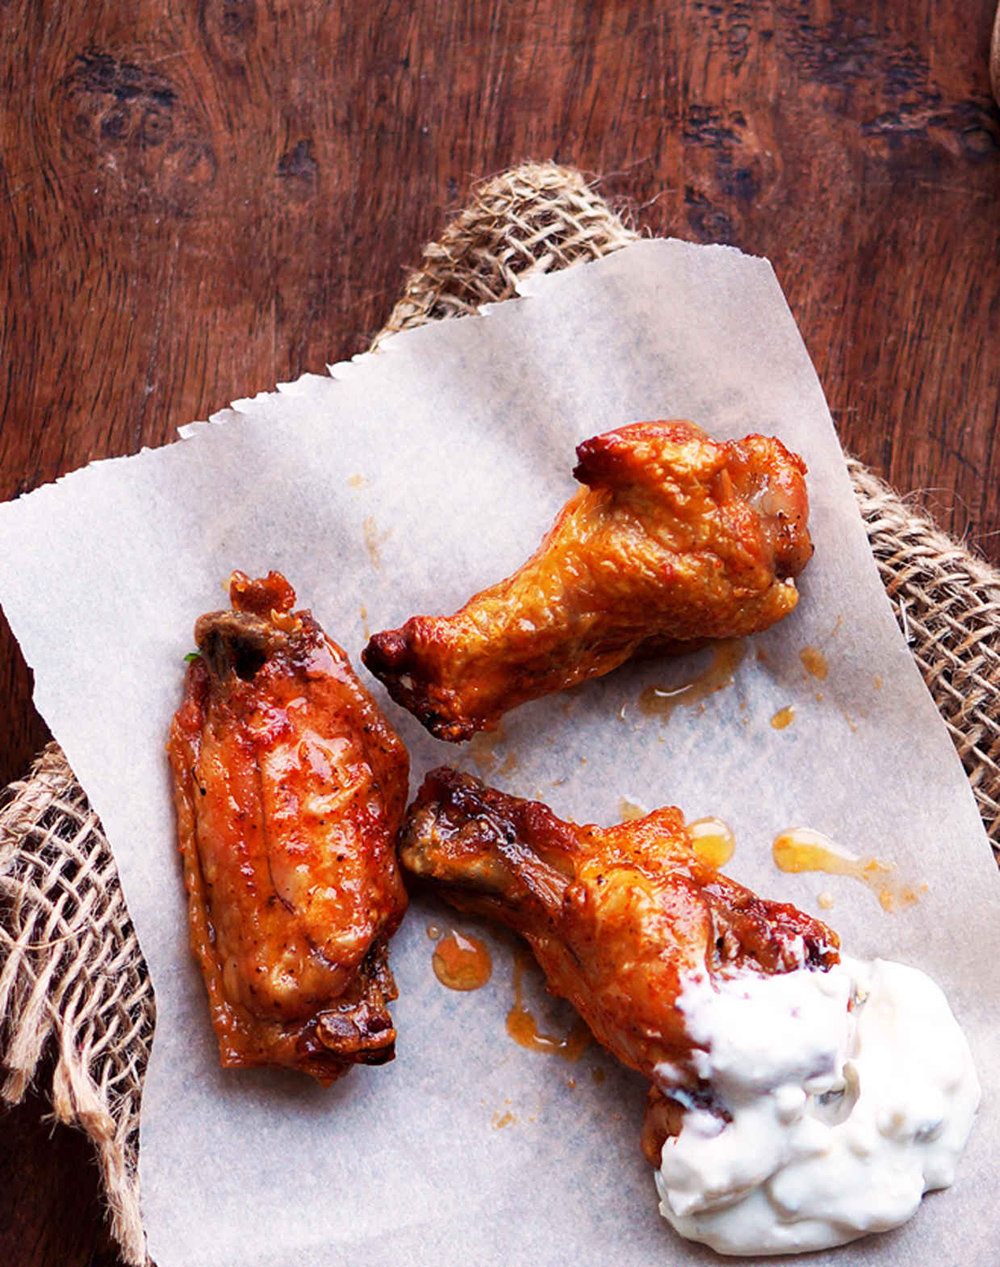 Baked Buffalo Wings | Foodess - 10 Super Bowl Recipes to Stave Off Monday's Hangover